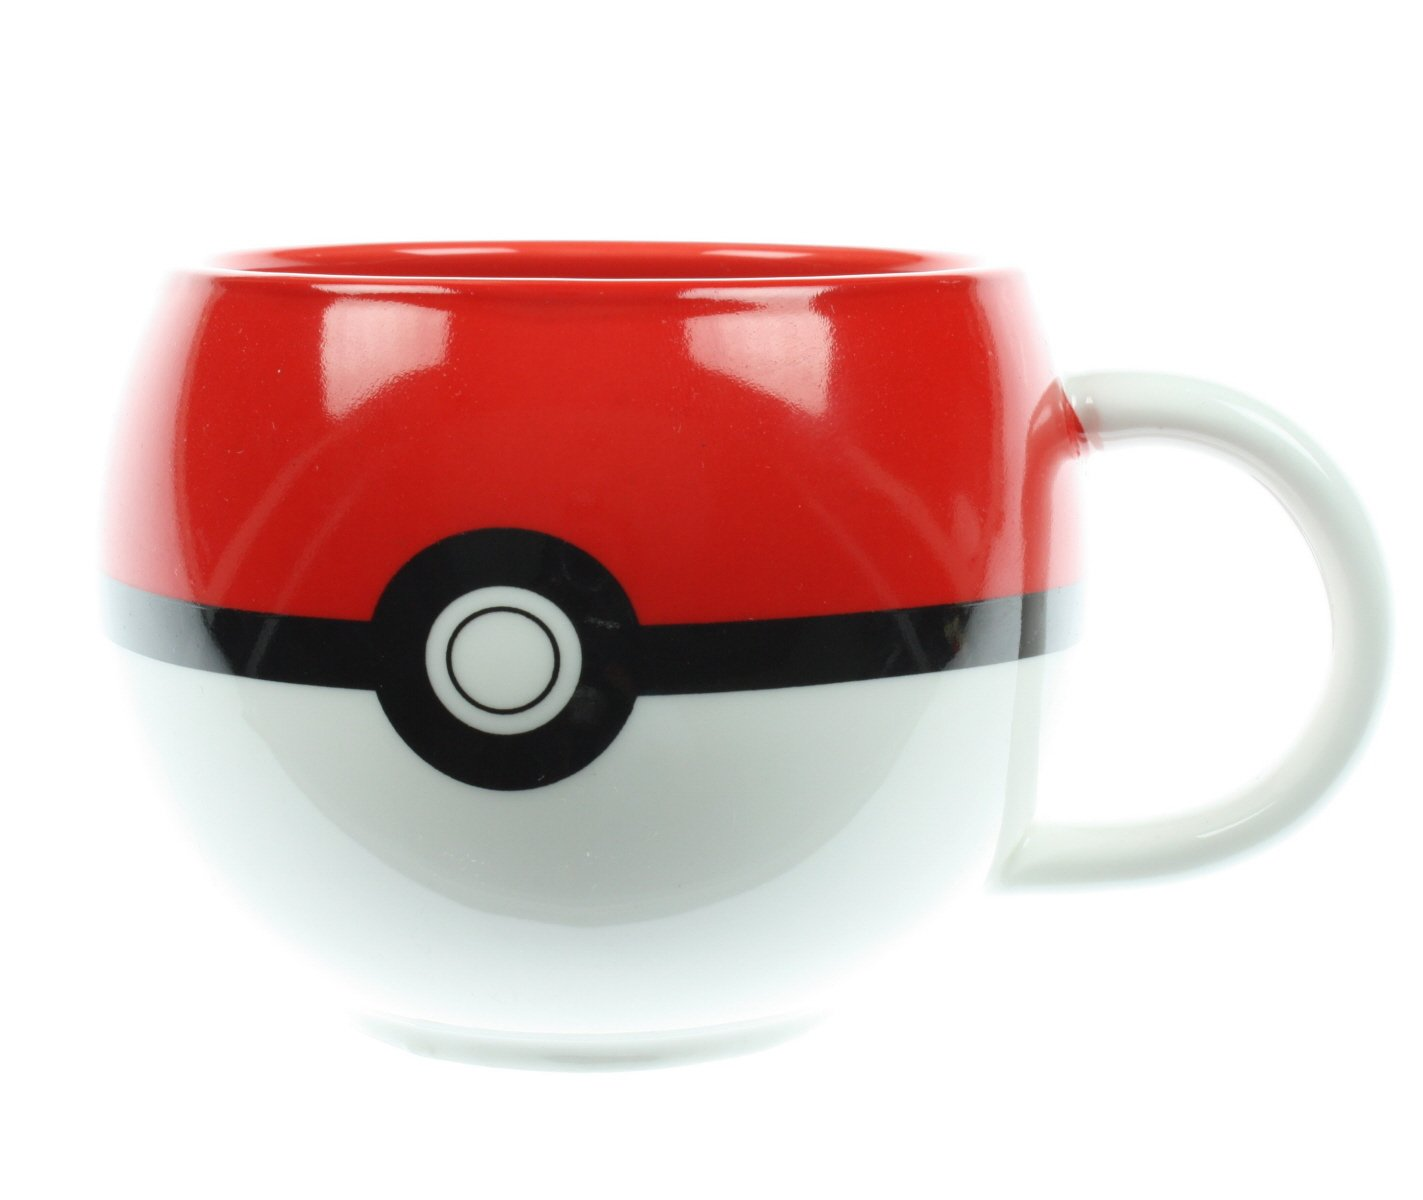 A Pokéball mug perfect for sipping on coffee or tea